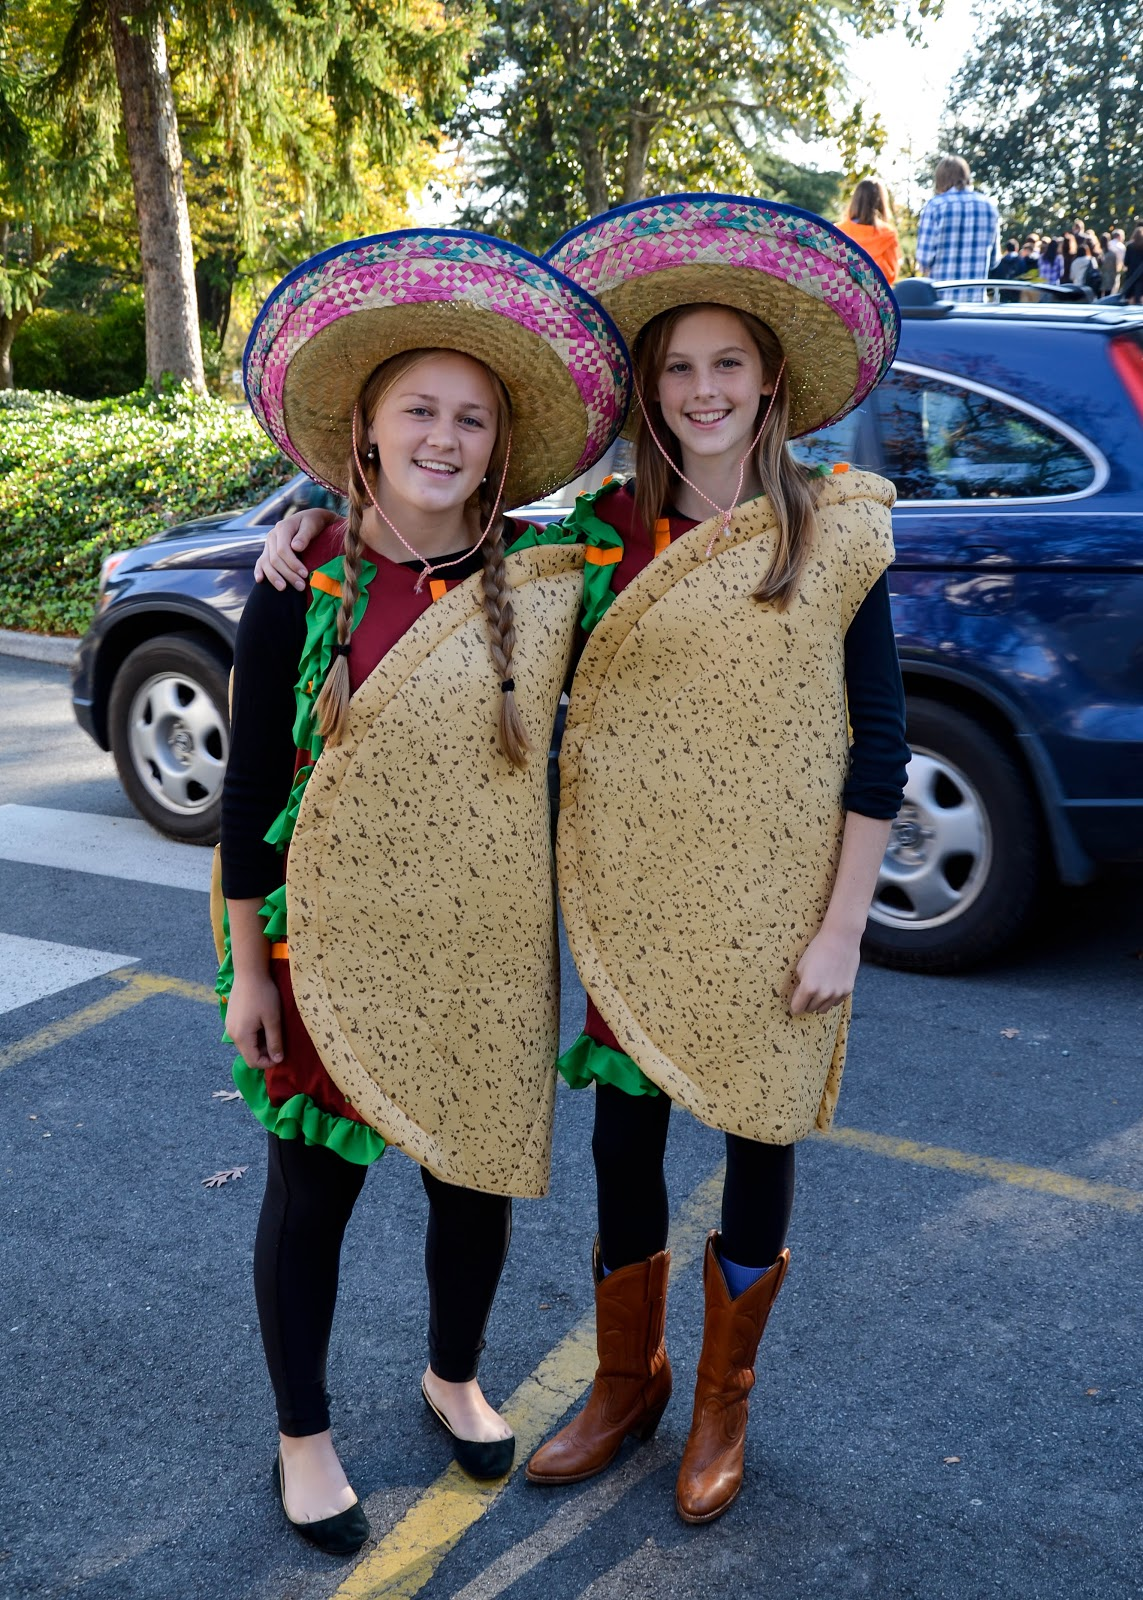 18 gt Images For   Cute Twin Day Ideas High School Twin Day Outfits. Similiar Cute Ideas For Twin Day At School Keywords